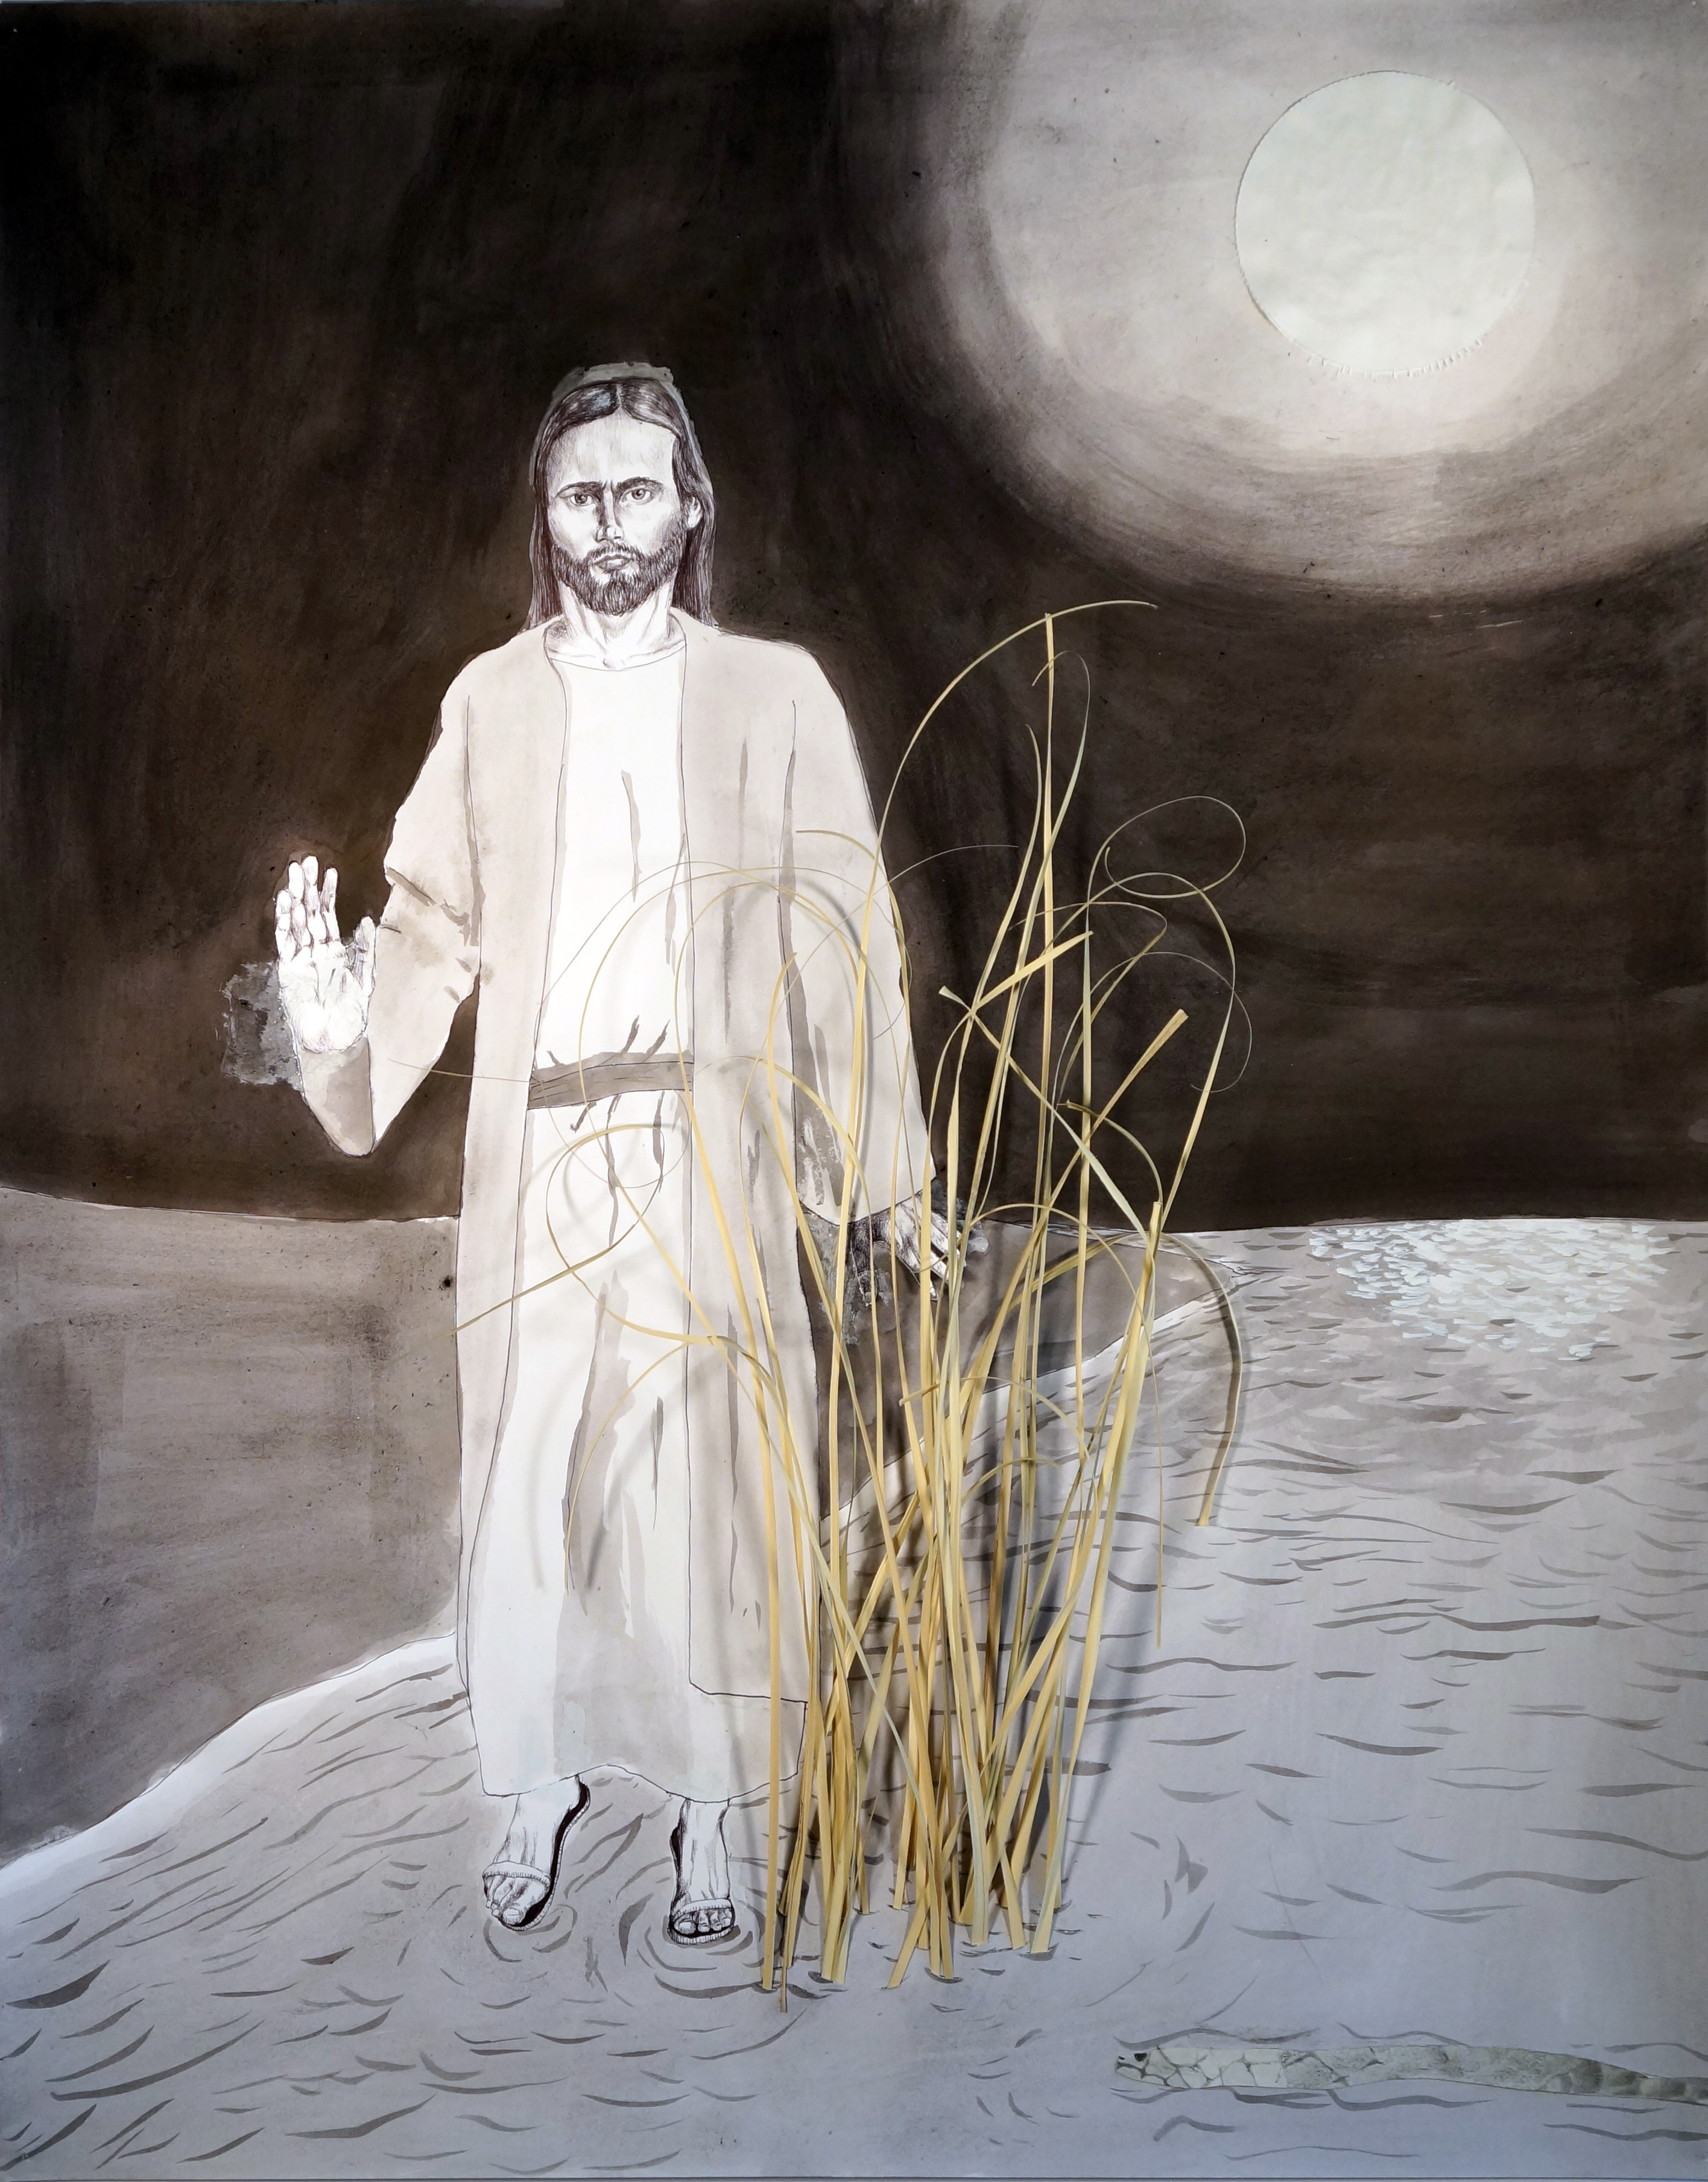 Jesus Walking Through the Reeds Under a Full Moon